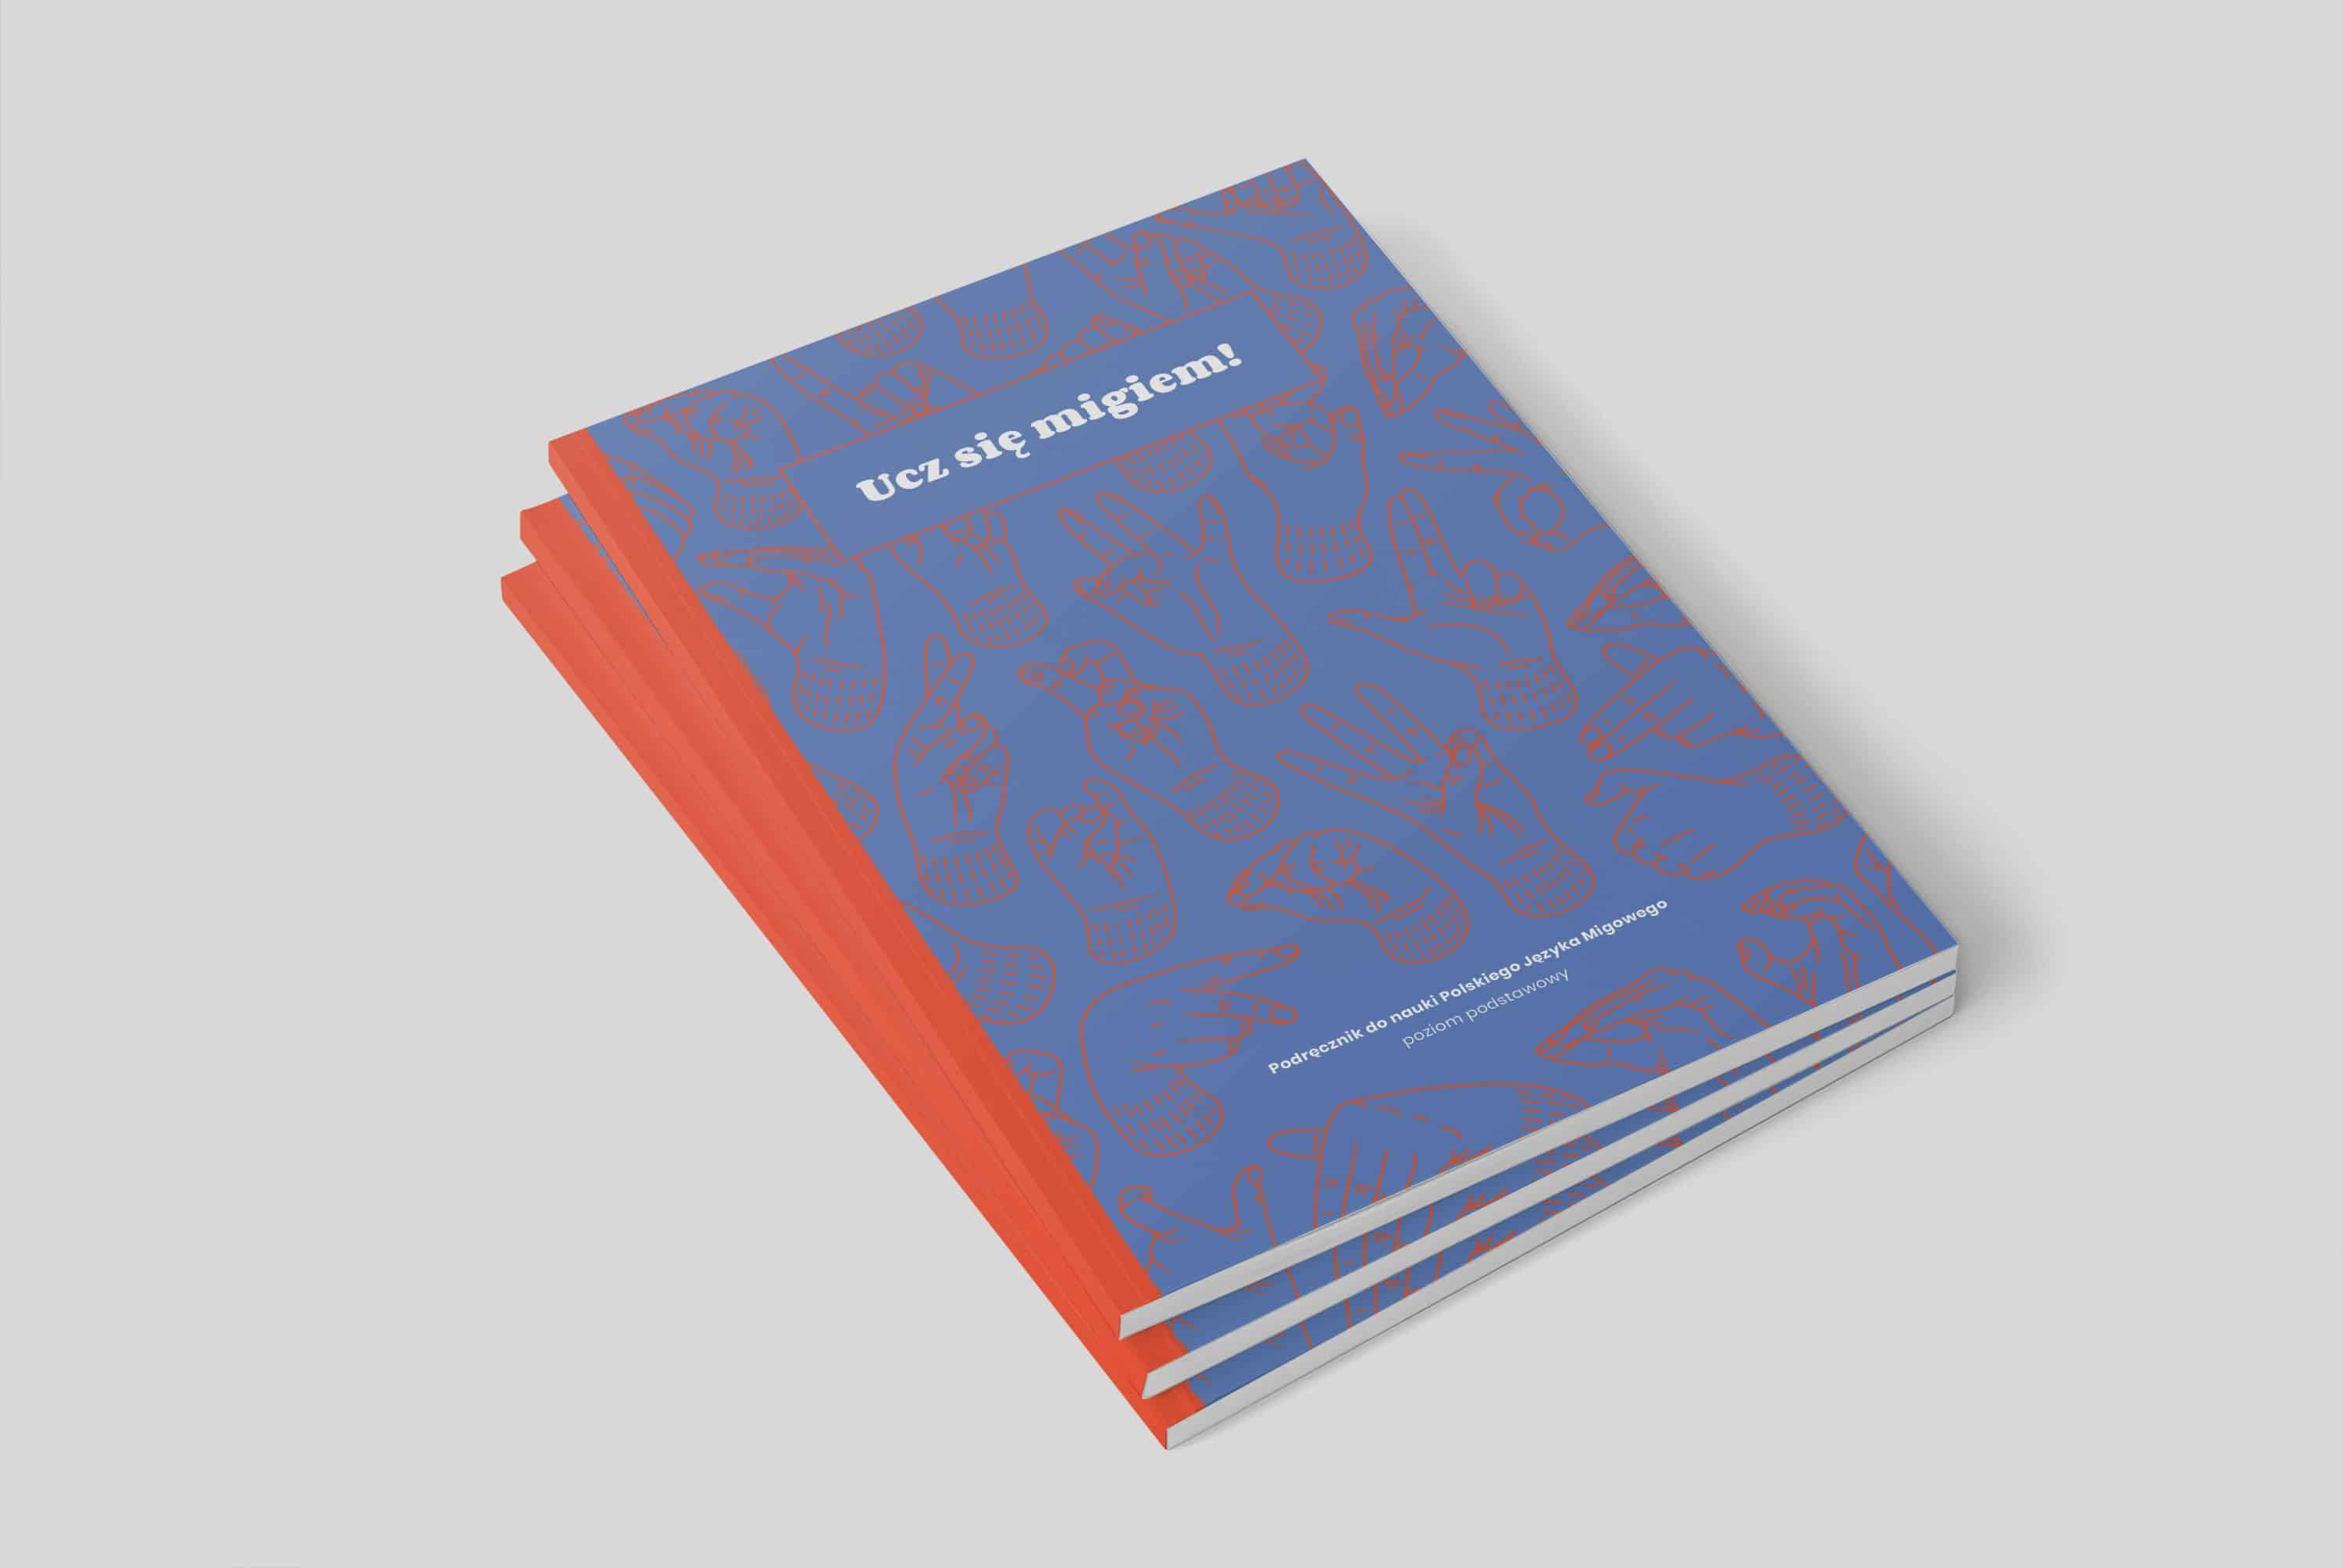 Roksana Goncerzewicz – 'The project of handbook for sign language'